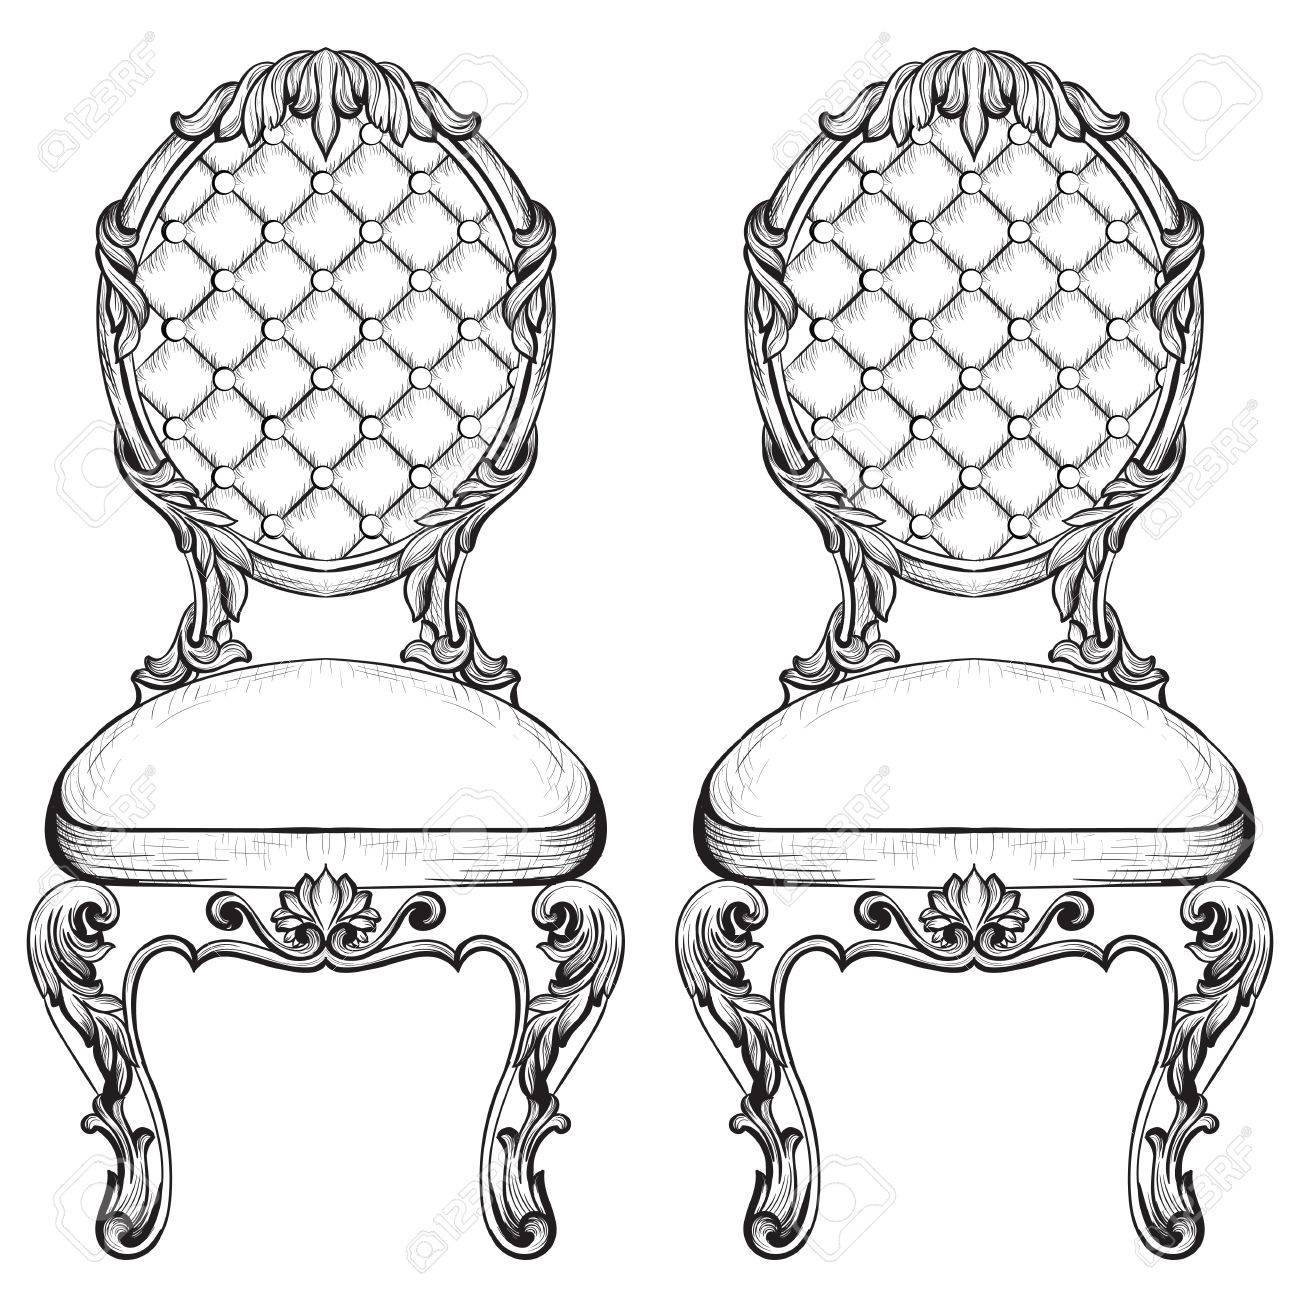 Exquisite Fabulous Imperial Baroque Chairs In Luxurious Fabric Ornament.  Vector French Luxury Rich Intricate Structure